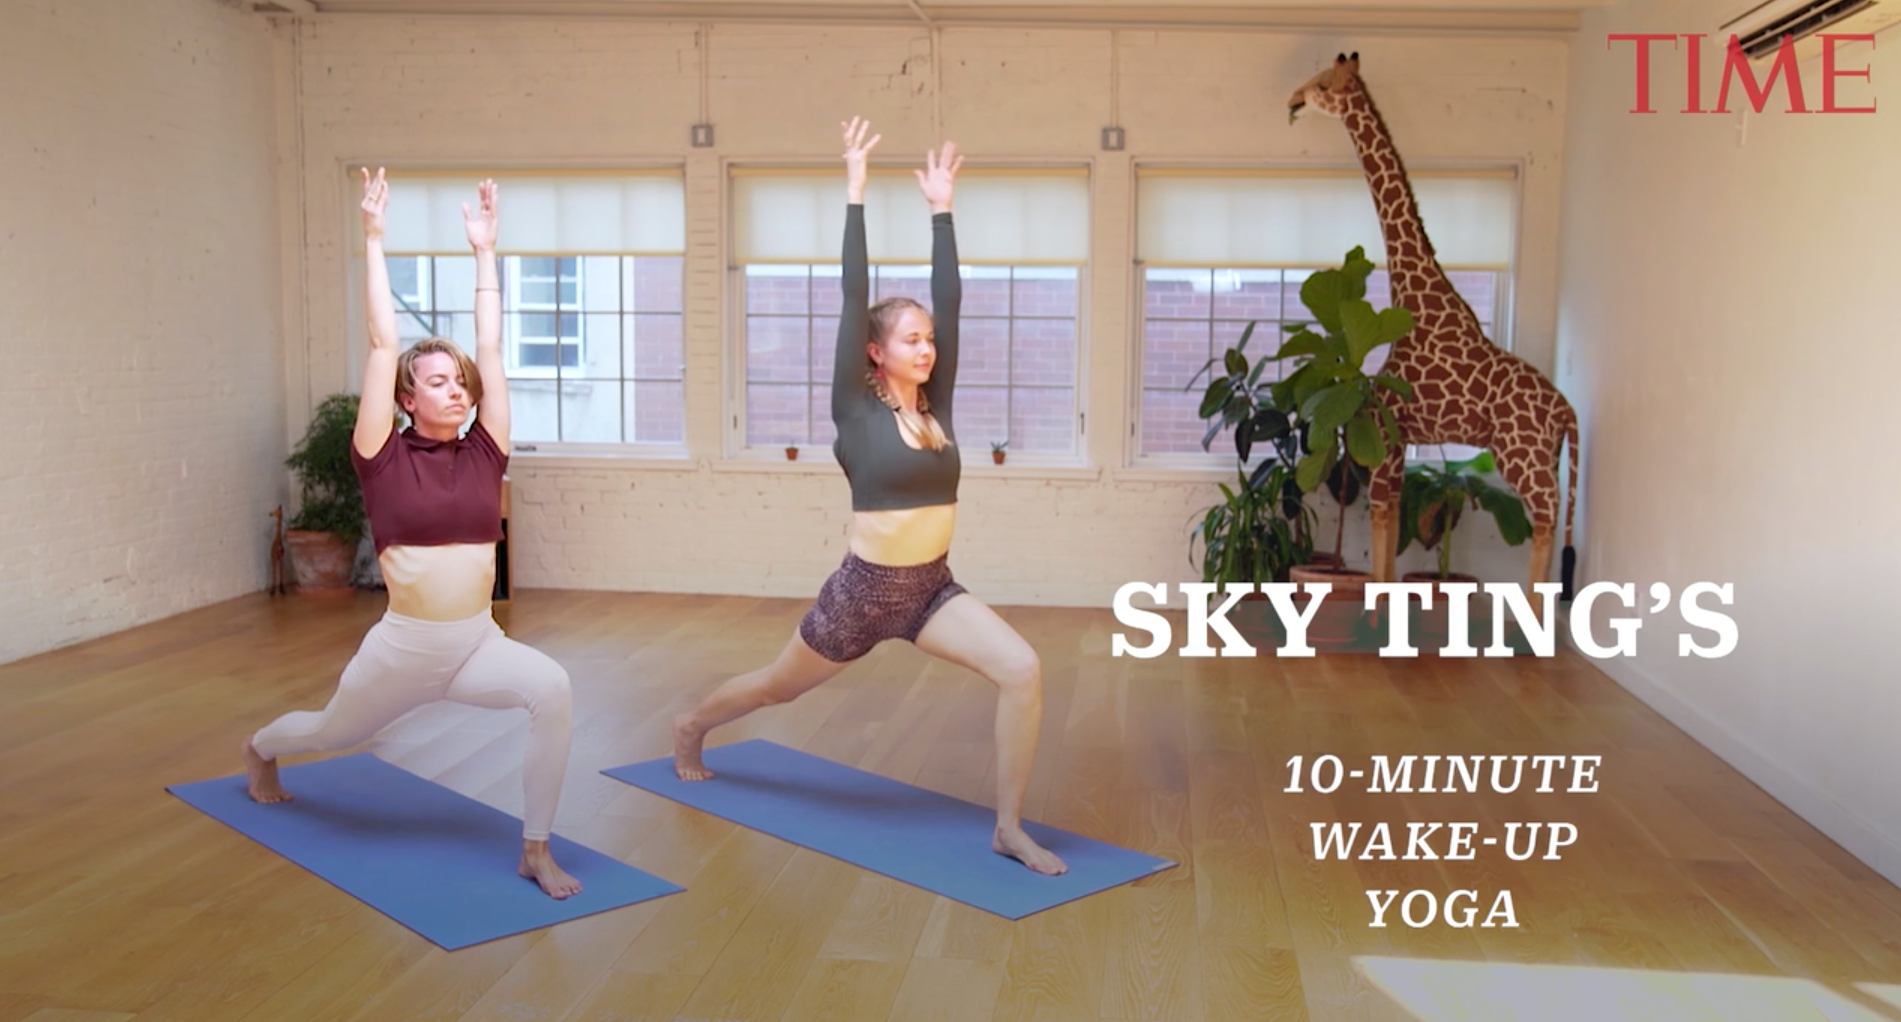 The Sky Ting founders, Krissy Jones and Chloe Kernaghan, share a 10-minute morning yoga routine.